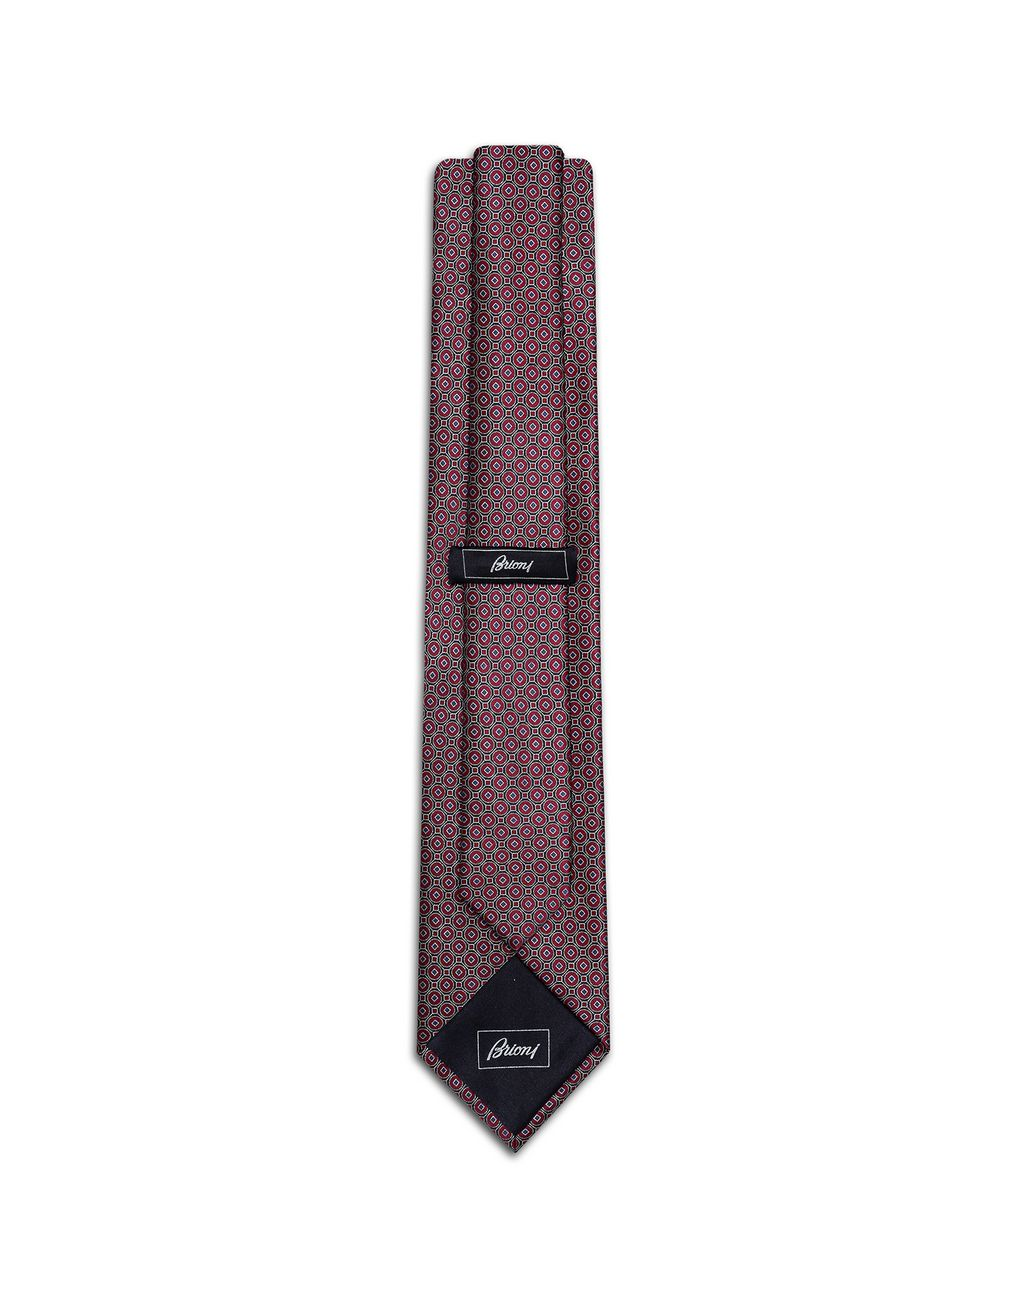 BRIONI Cravate bordeaux à large motif Cravate Homme r